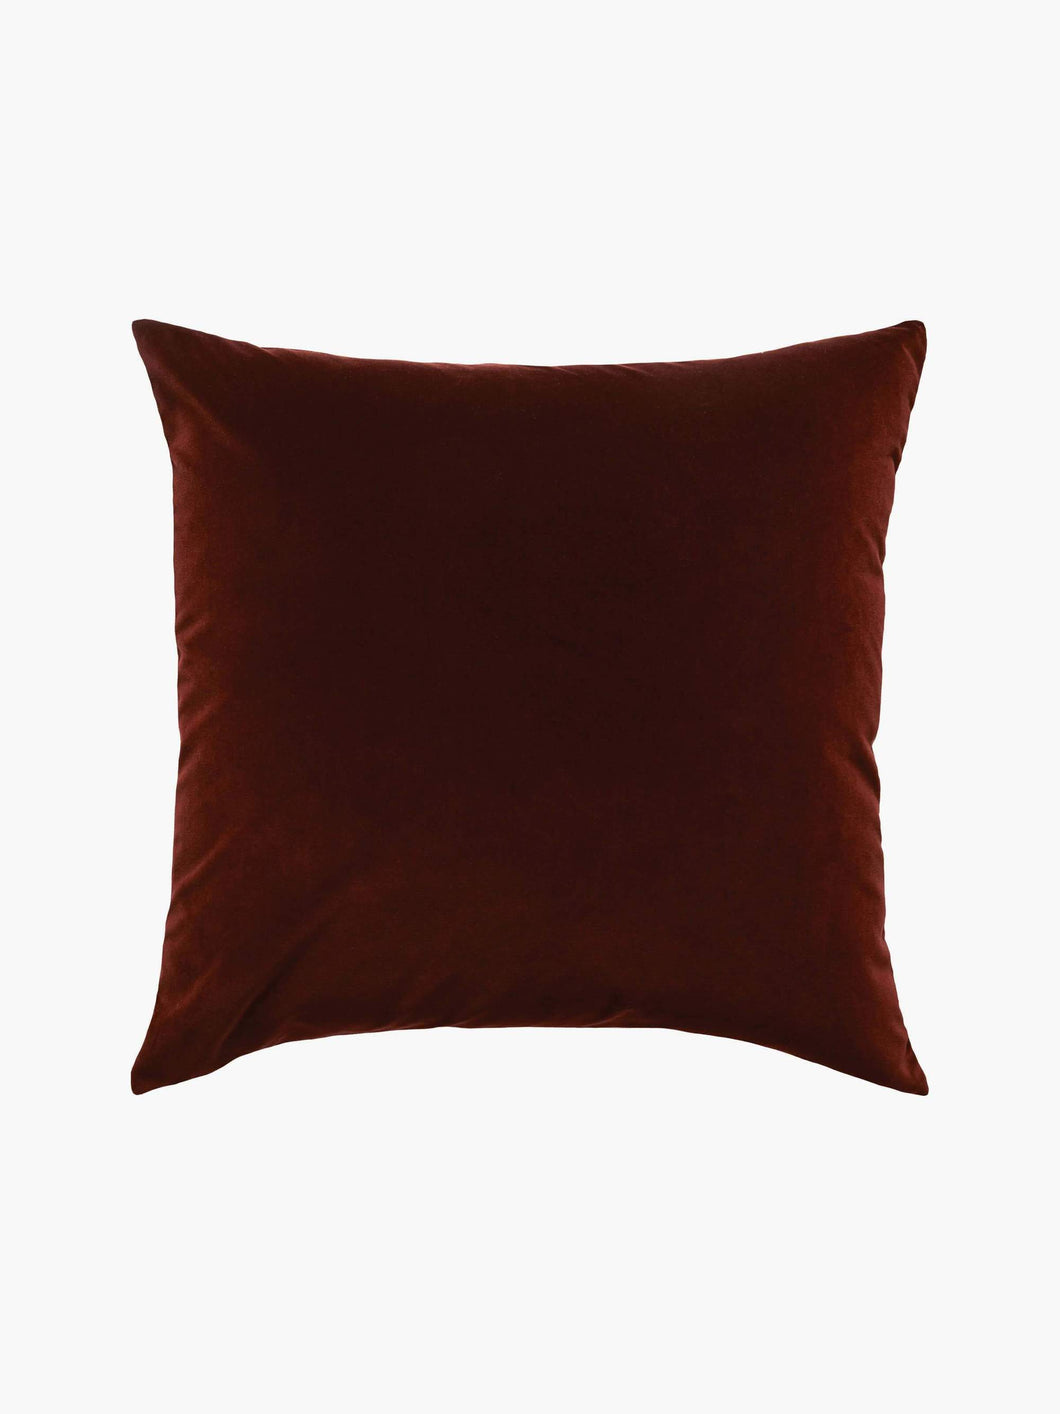 Splendour Cushion - Velvet Red Cushion